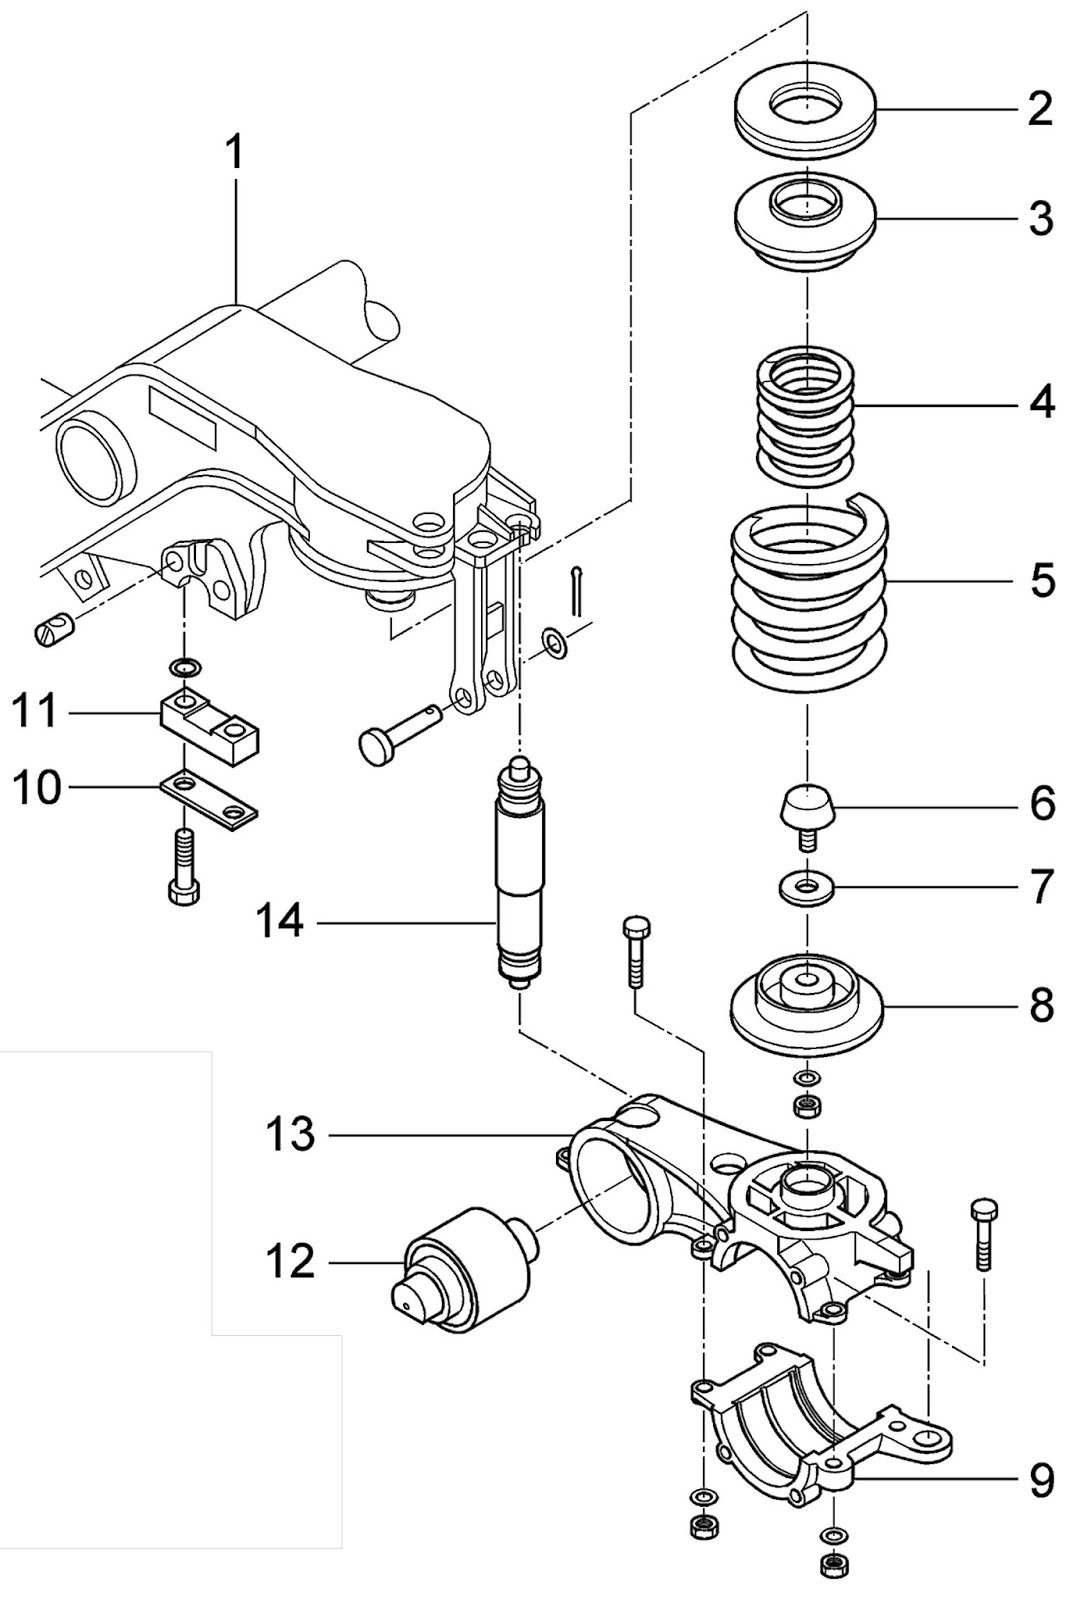 1992 1996ClubCarGasElectric as well Lhb Fiat Bogie Detailed furthermore Best Quality 5Ton Car Hydraulic Bottle 572949115 likewise Catalog3 in addition 333. on car body parts diagram